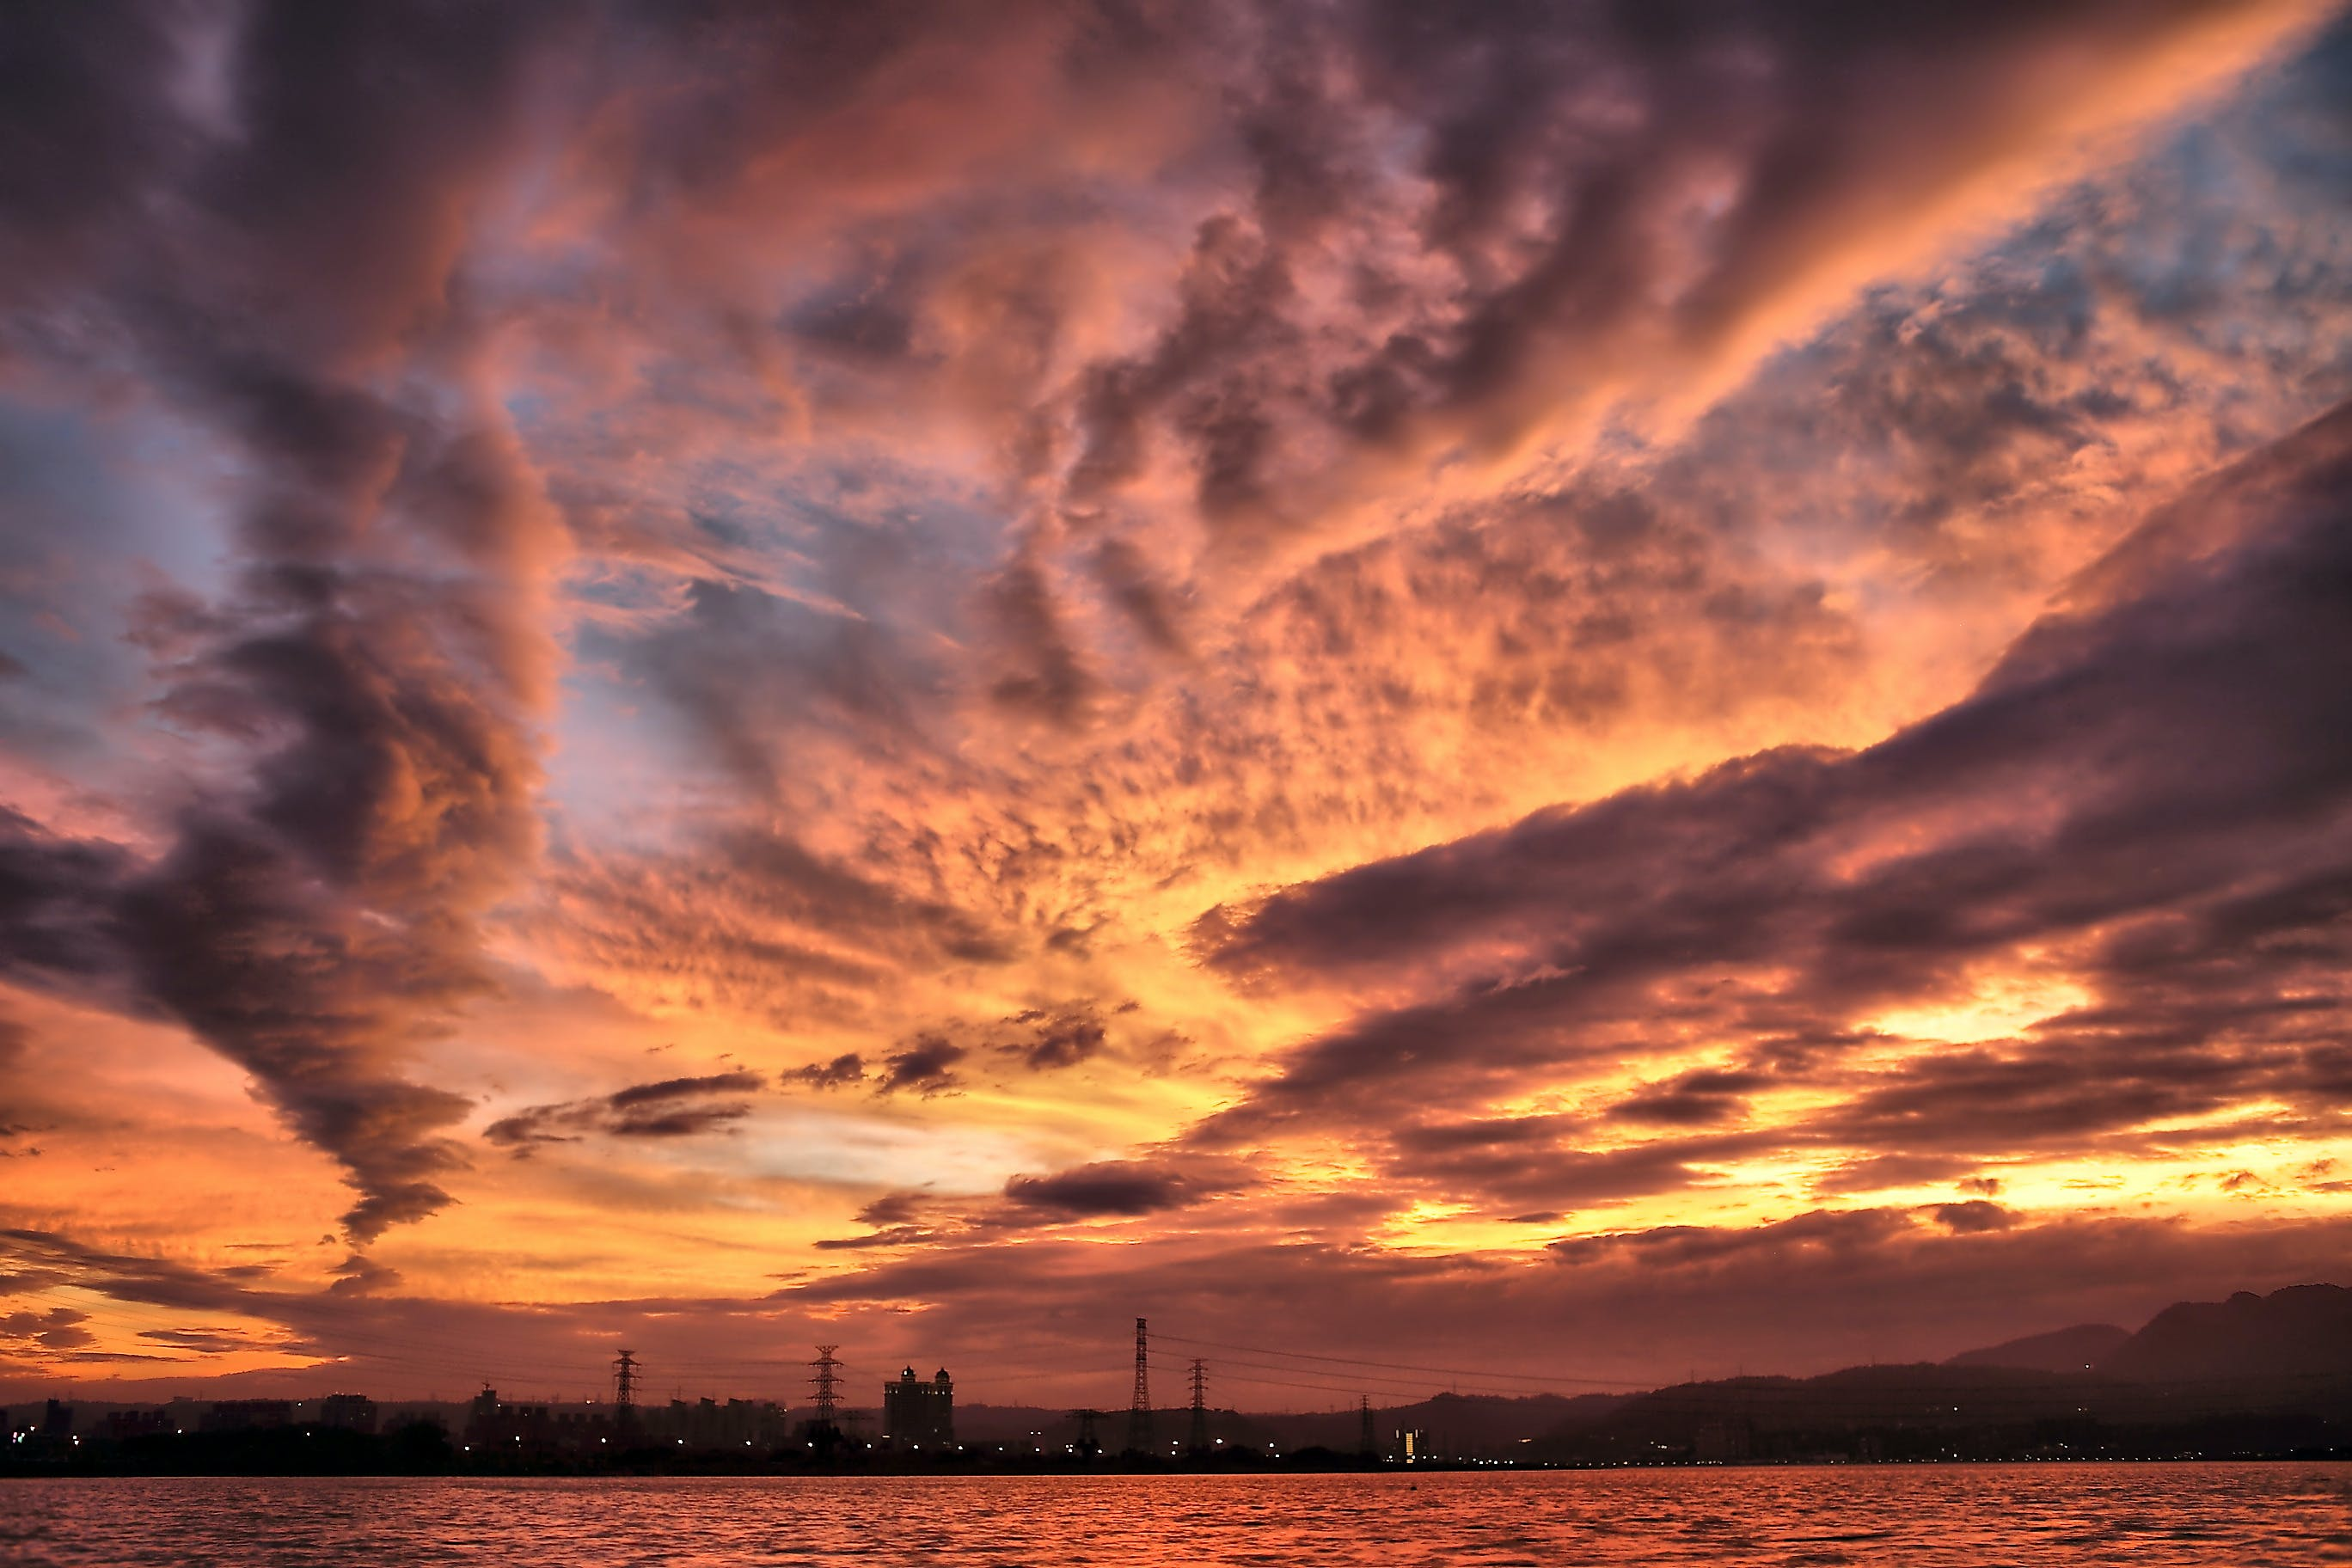 Photograph of Clouds at Sunset